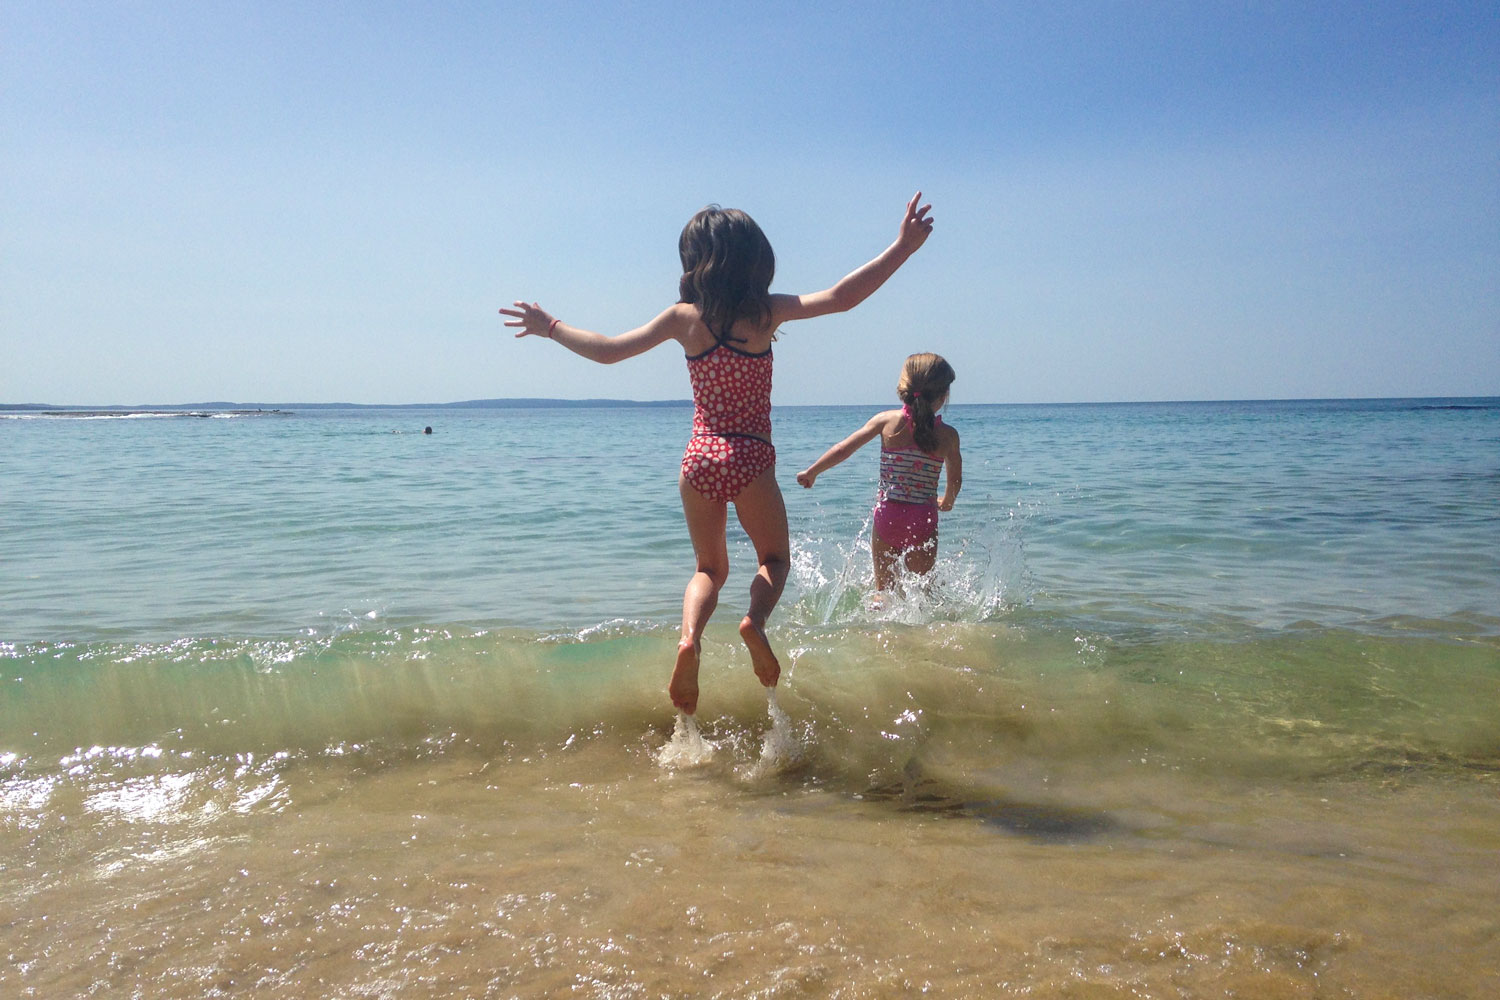 Claudia-and-Marisa-jumping-waves.jpg